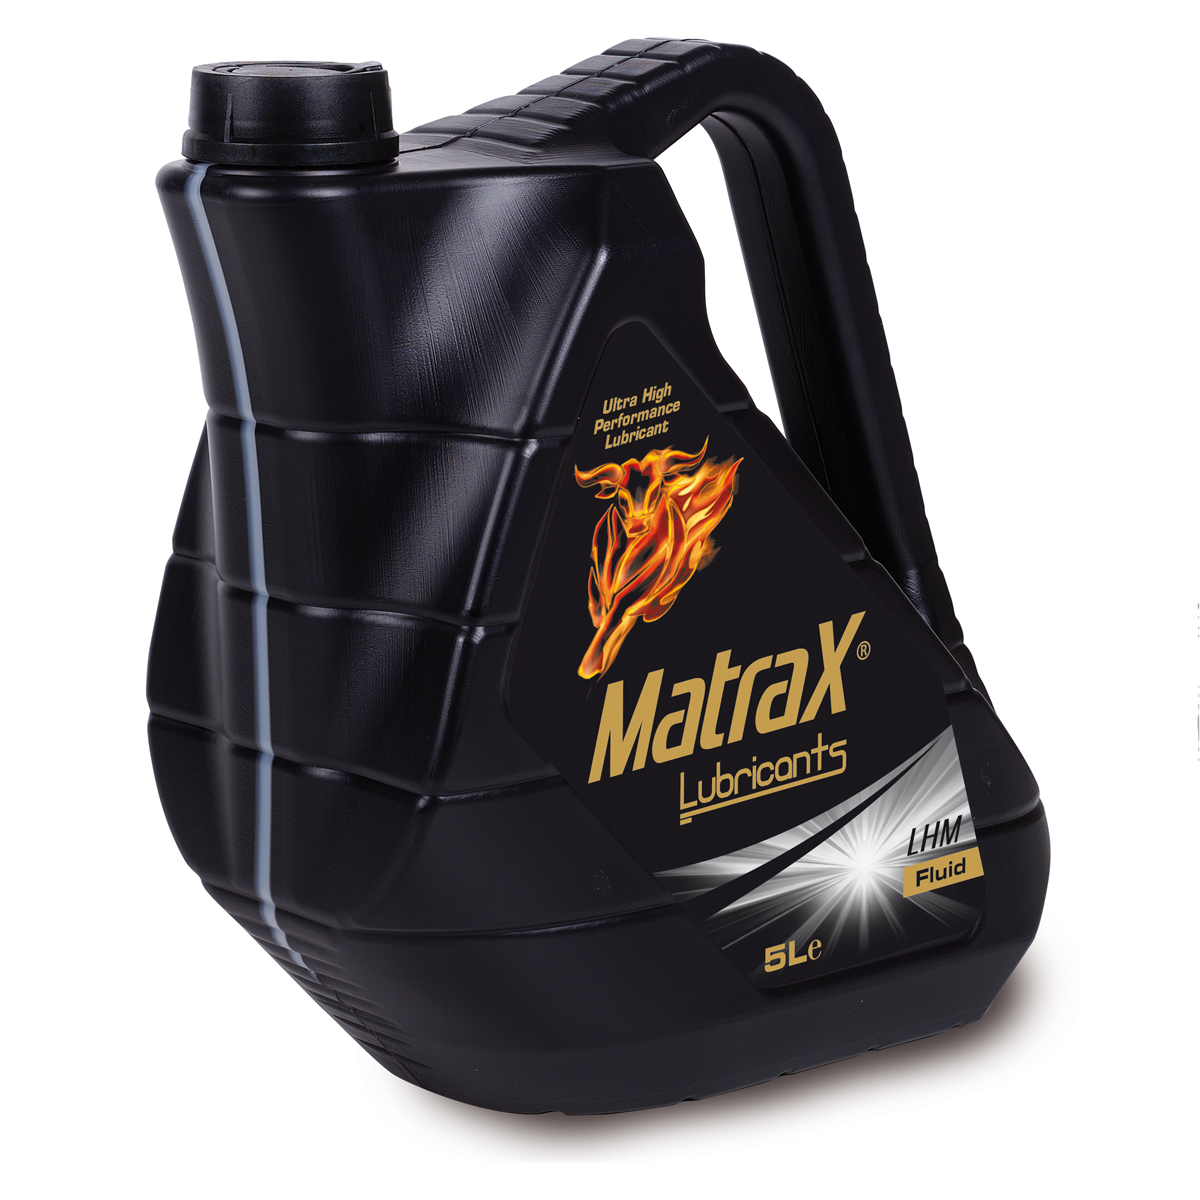 matrax-lubricants-LHM-Fluid-5l